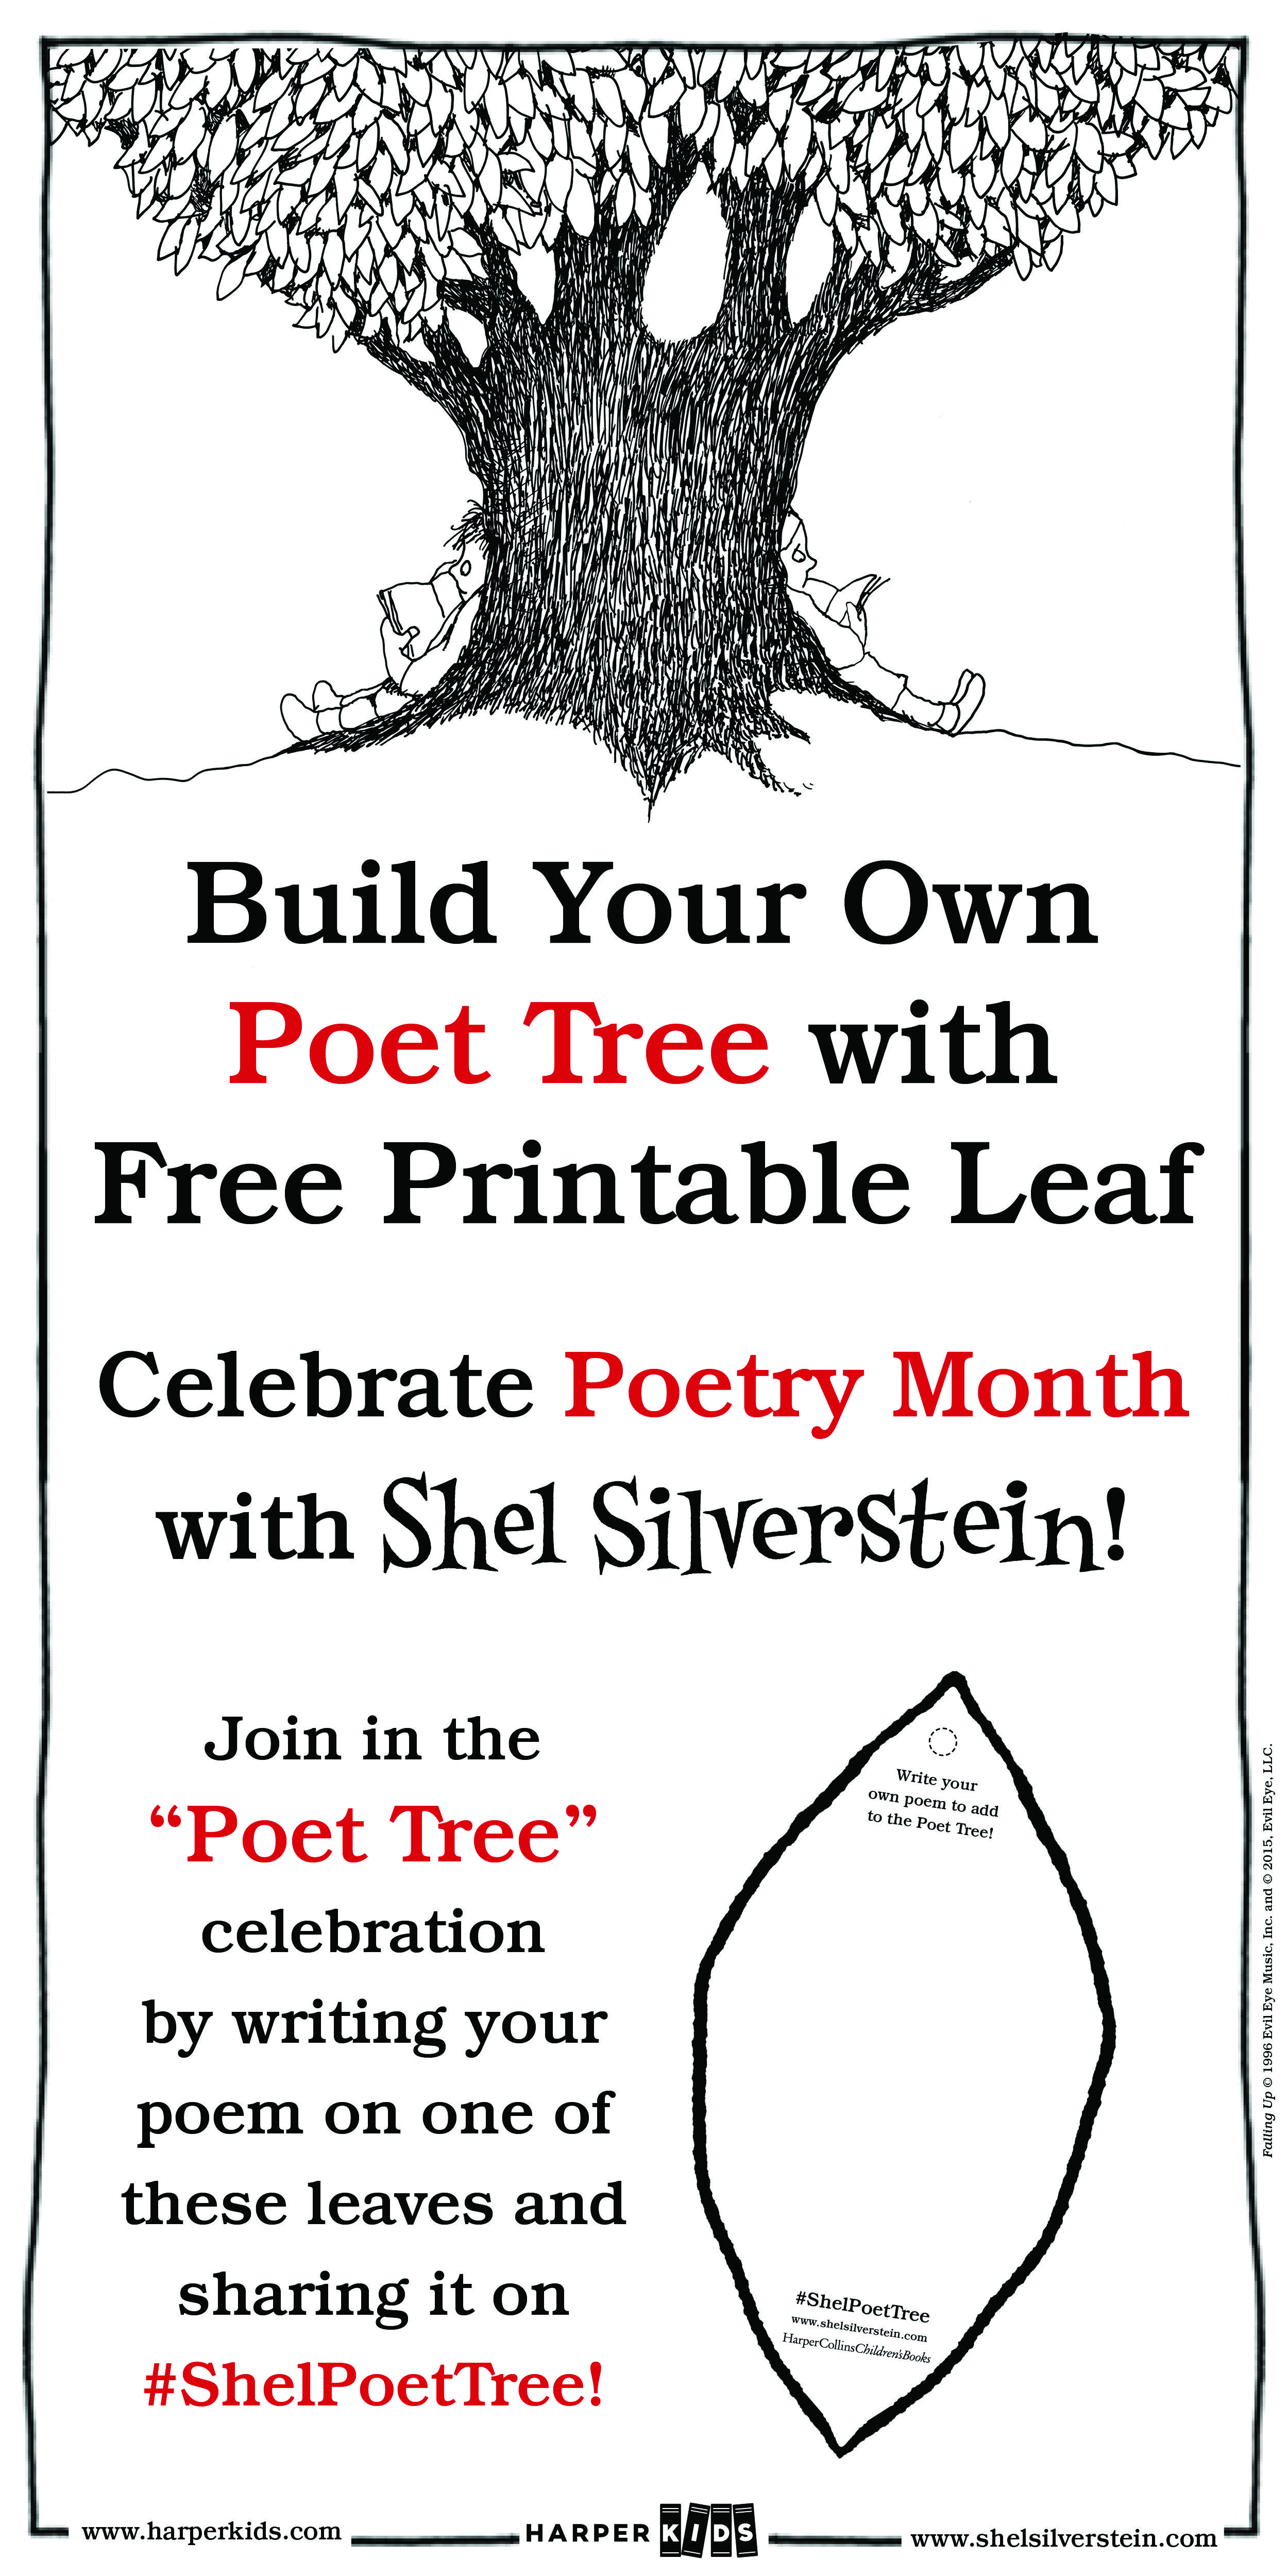 Create A Shelpoettree With This Downloadable Leaf